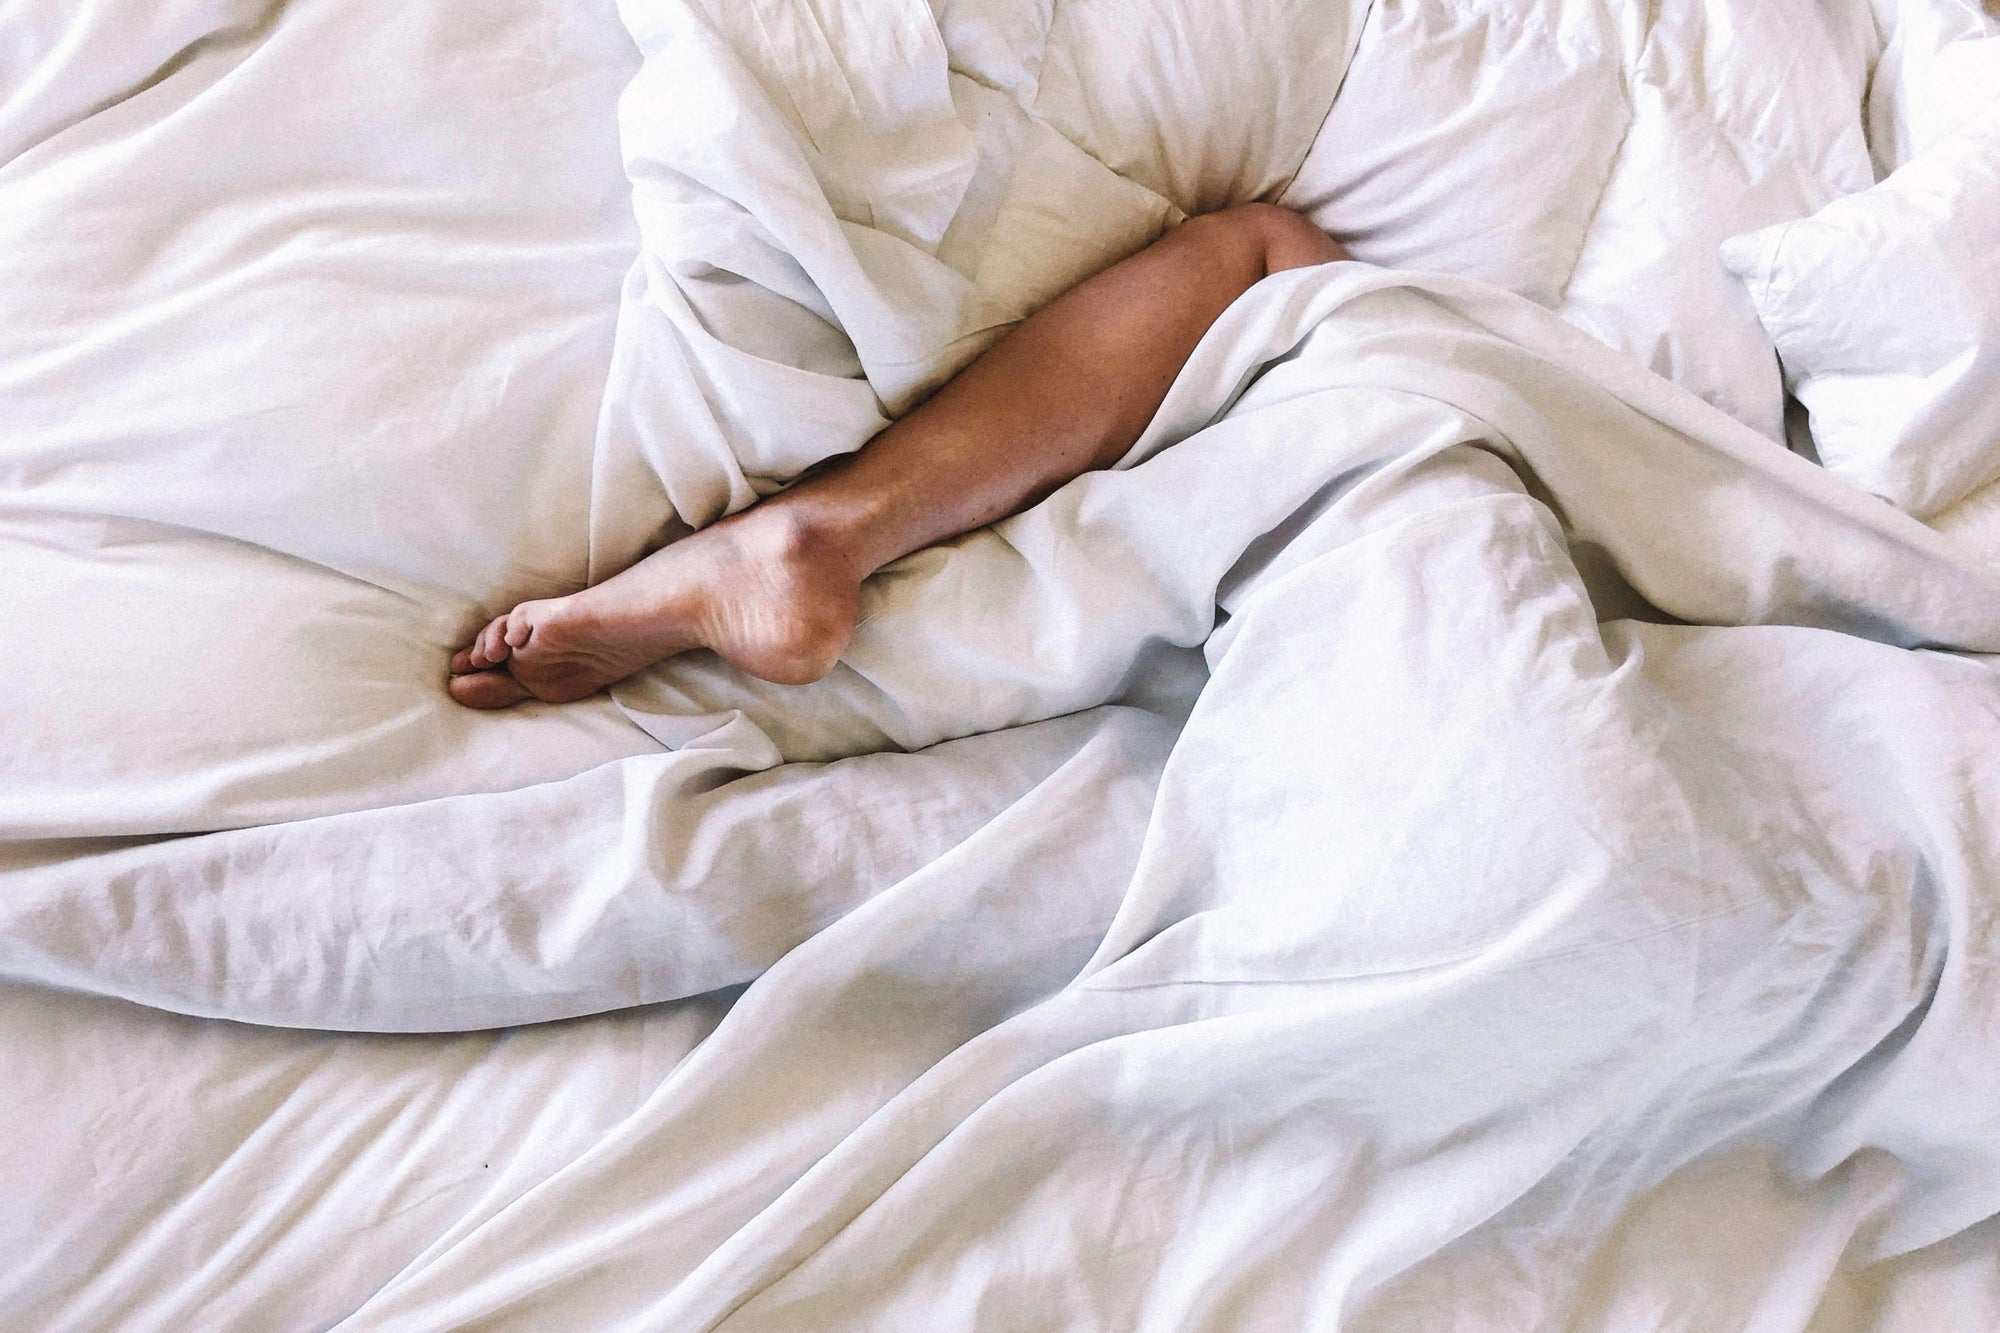 The 3 Secrets to Fix Your Sleep Position if You Keep Waking Up in the Middle of the Night